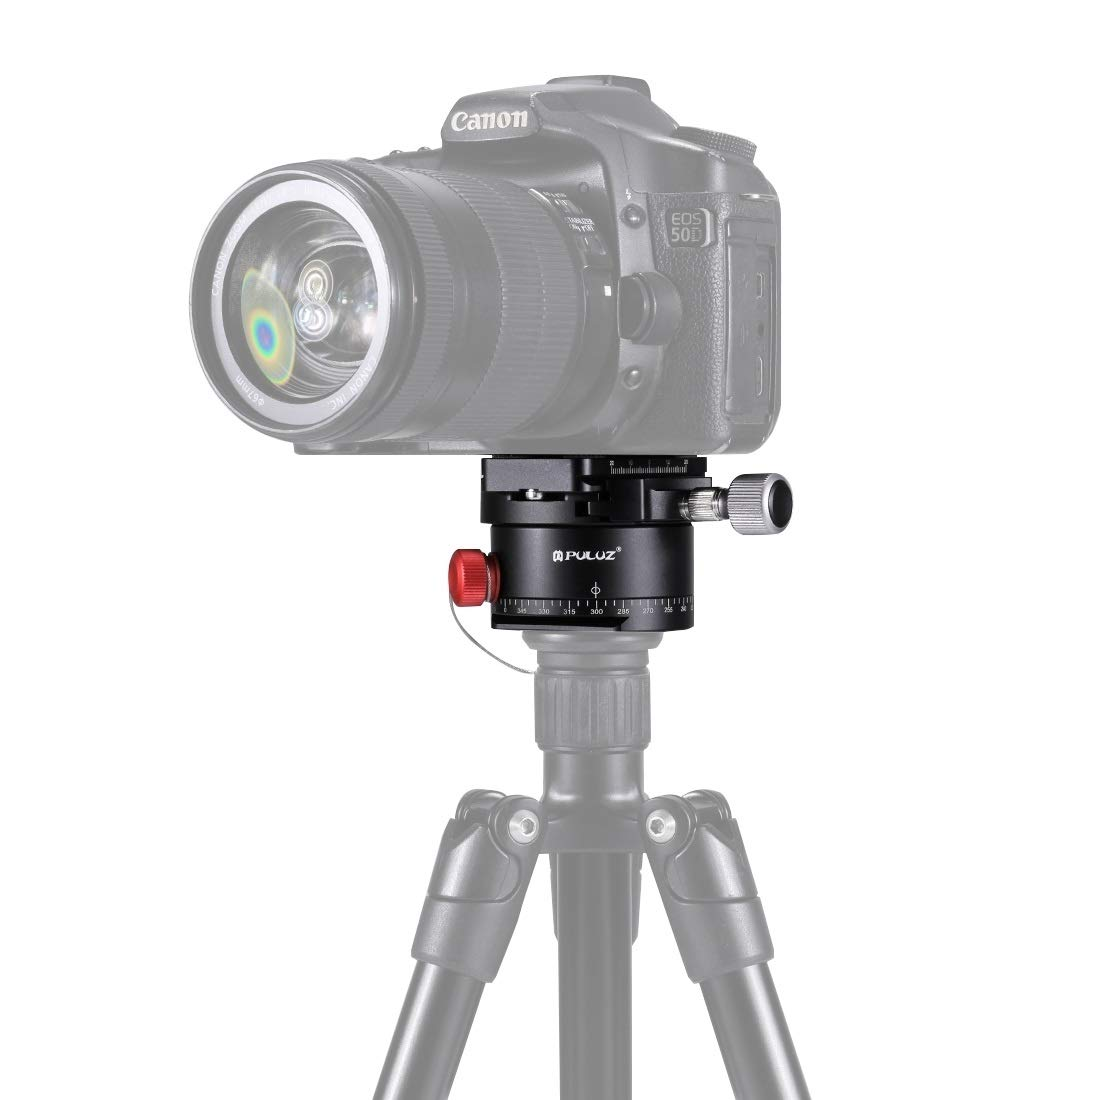 HEGUANGWEI Camera Mount Aluminum Alloy Panoramic Indexing Rotator Ball Head with Quick Release Plate for Camera Tripod Head Photography by HEGUANGWEI